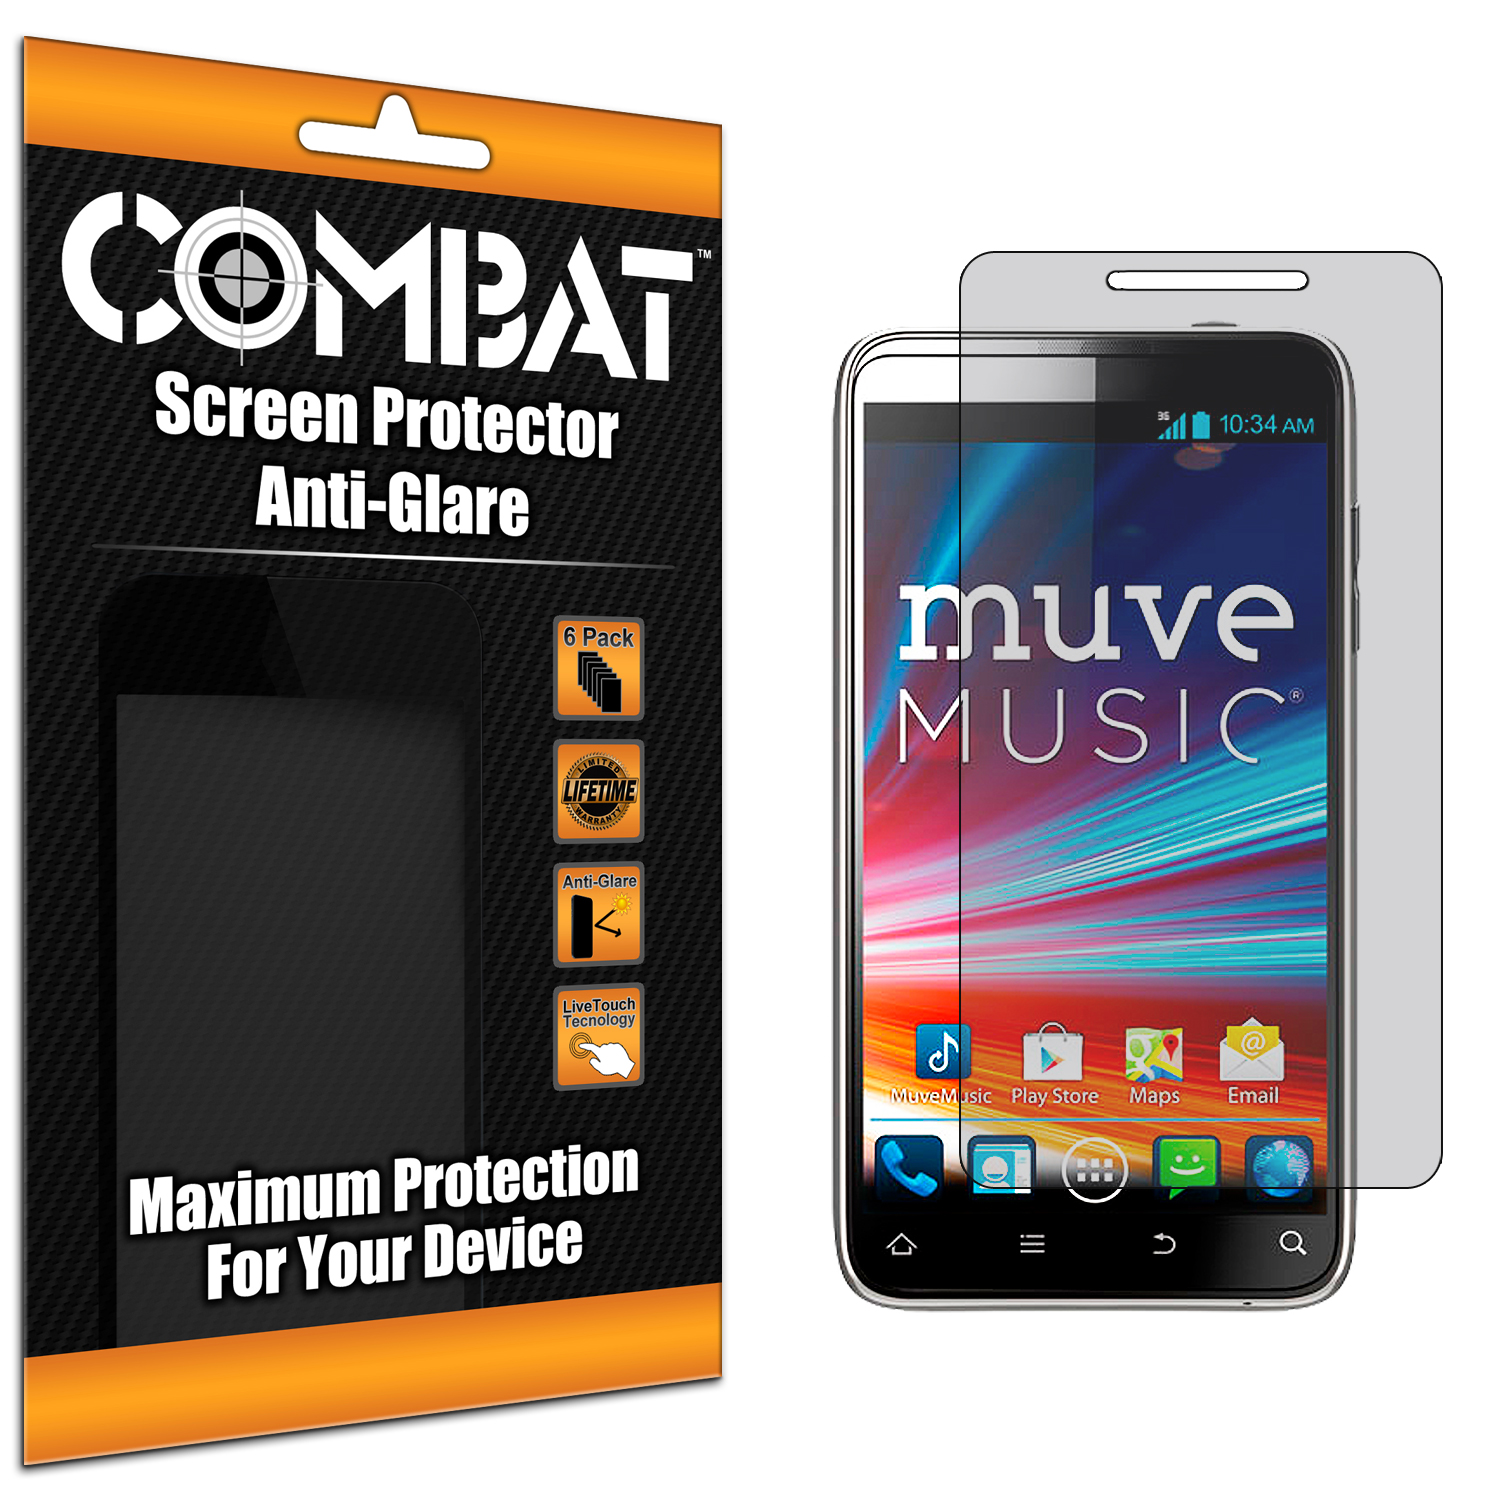 ZTE Engage LT N8000 Combat 6 Pack Anti-Glare Matte Screen Protector